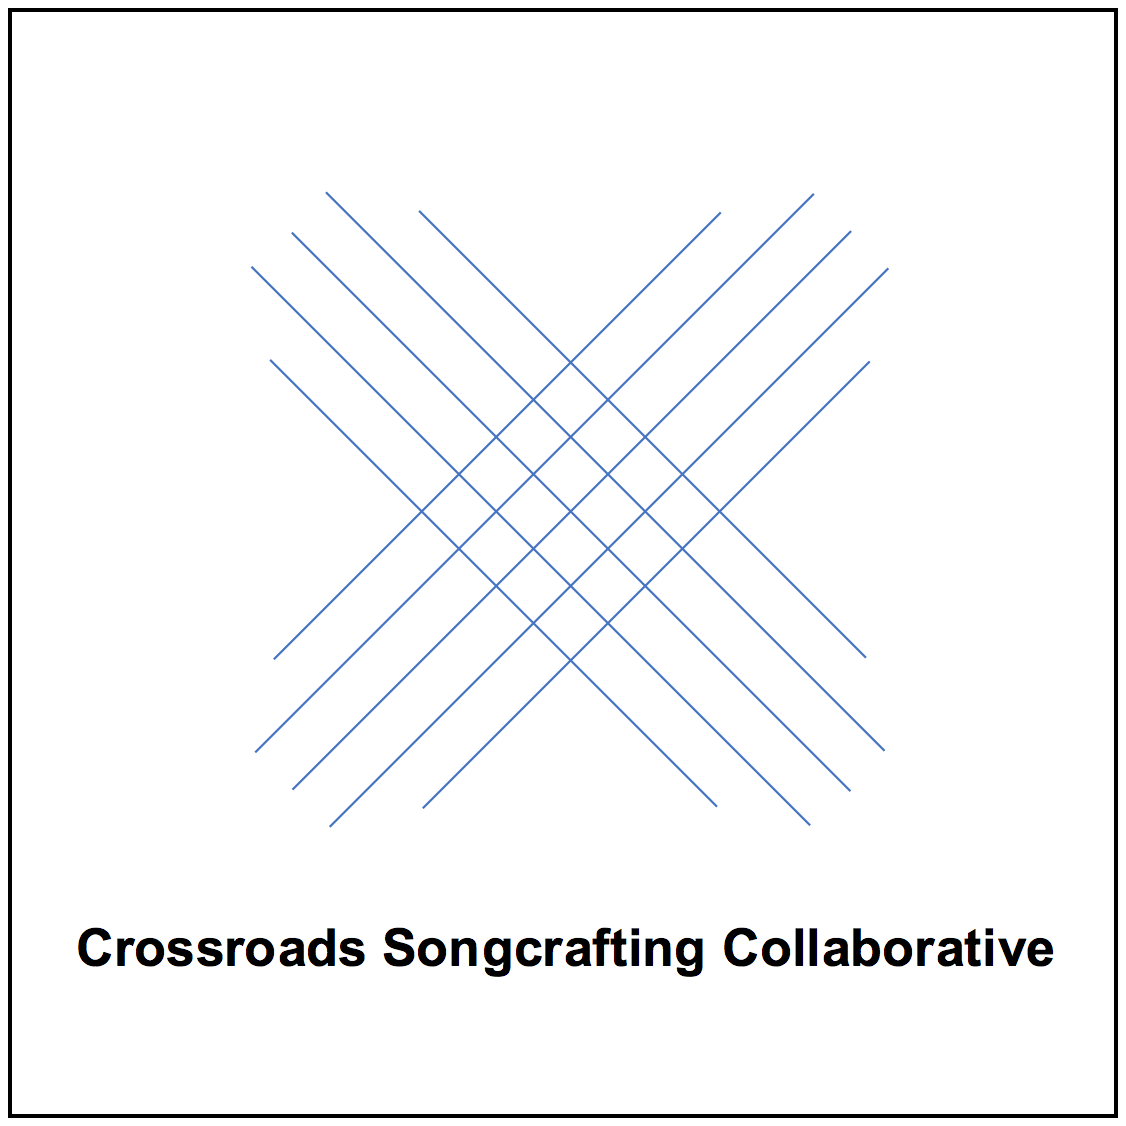 Cruces Creatives Events Luggage Security Alarm Circuit Diagram Electronicshuborg The Crossroads Songcrafting Collaborative Is A Group Where Songwriters Can Support Each Other Through Entire Process Of Creating Songs